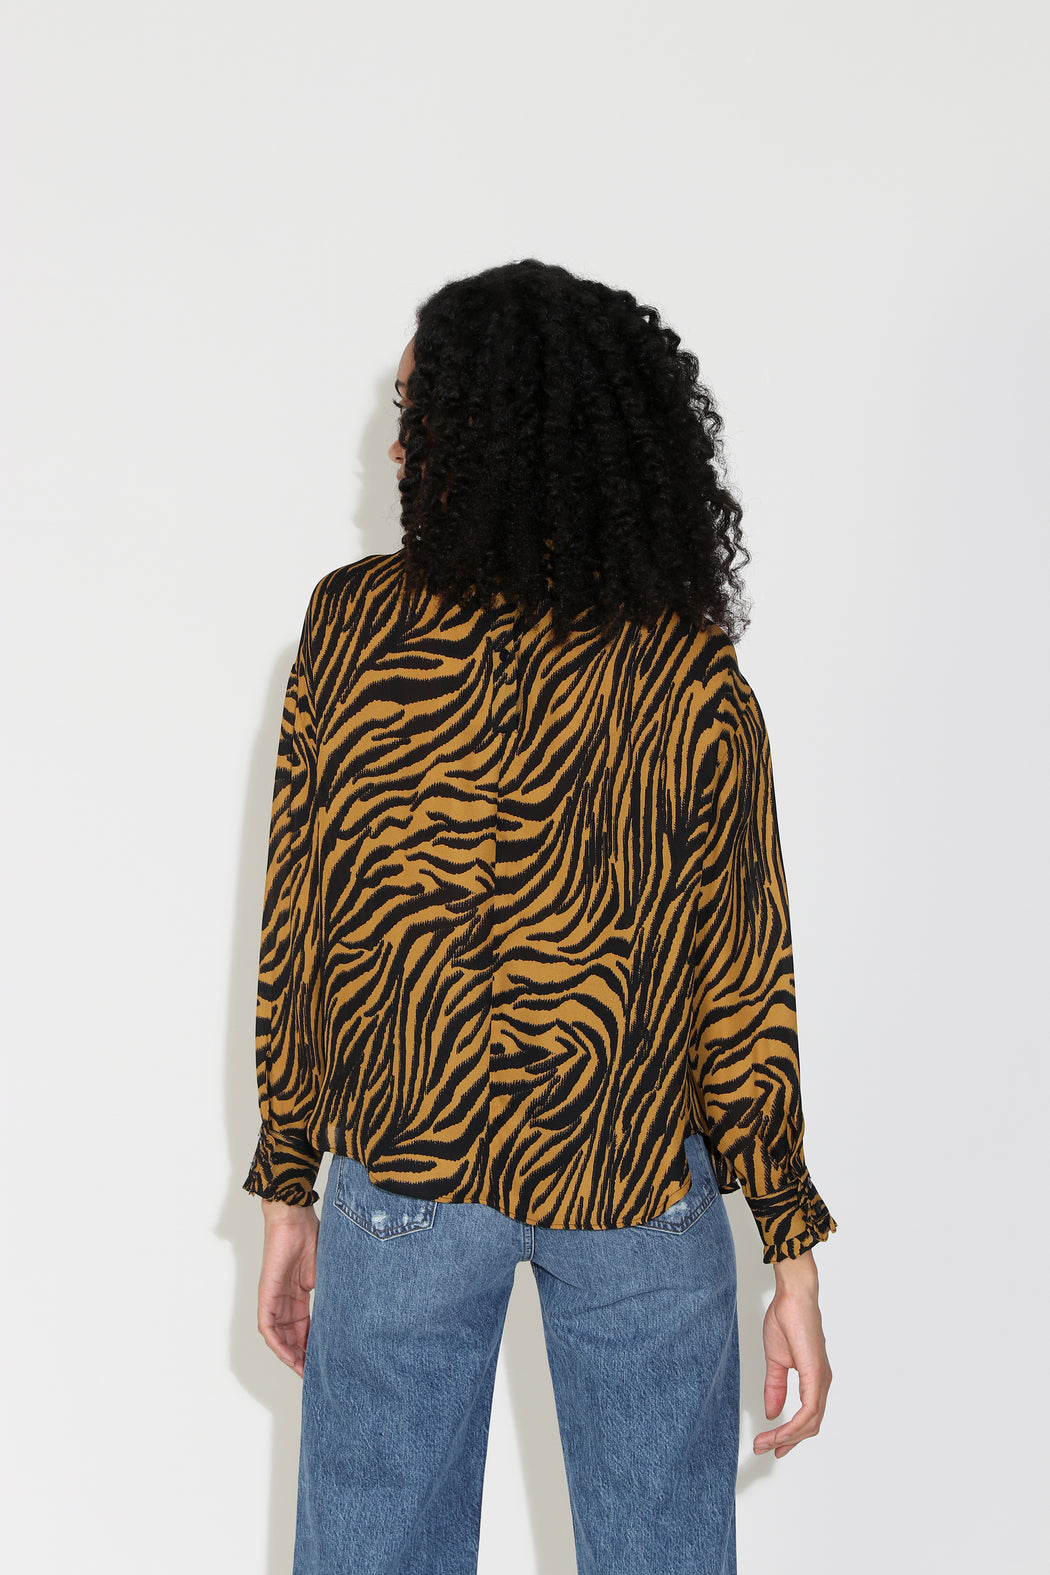 No.6 Thomas Top in Tobacco Black Zebra